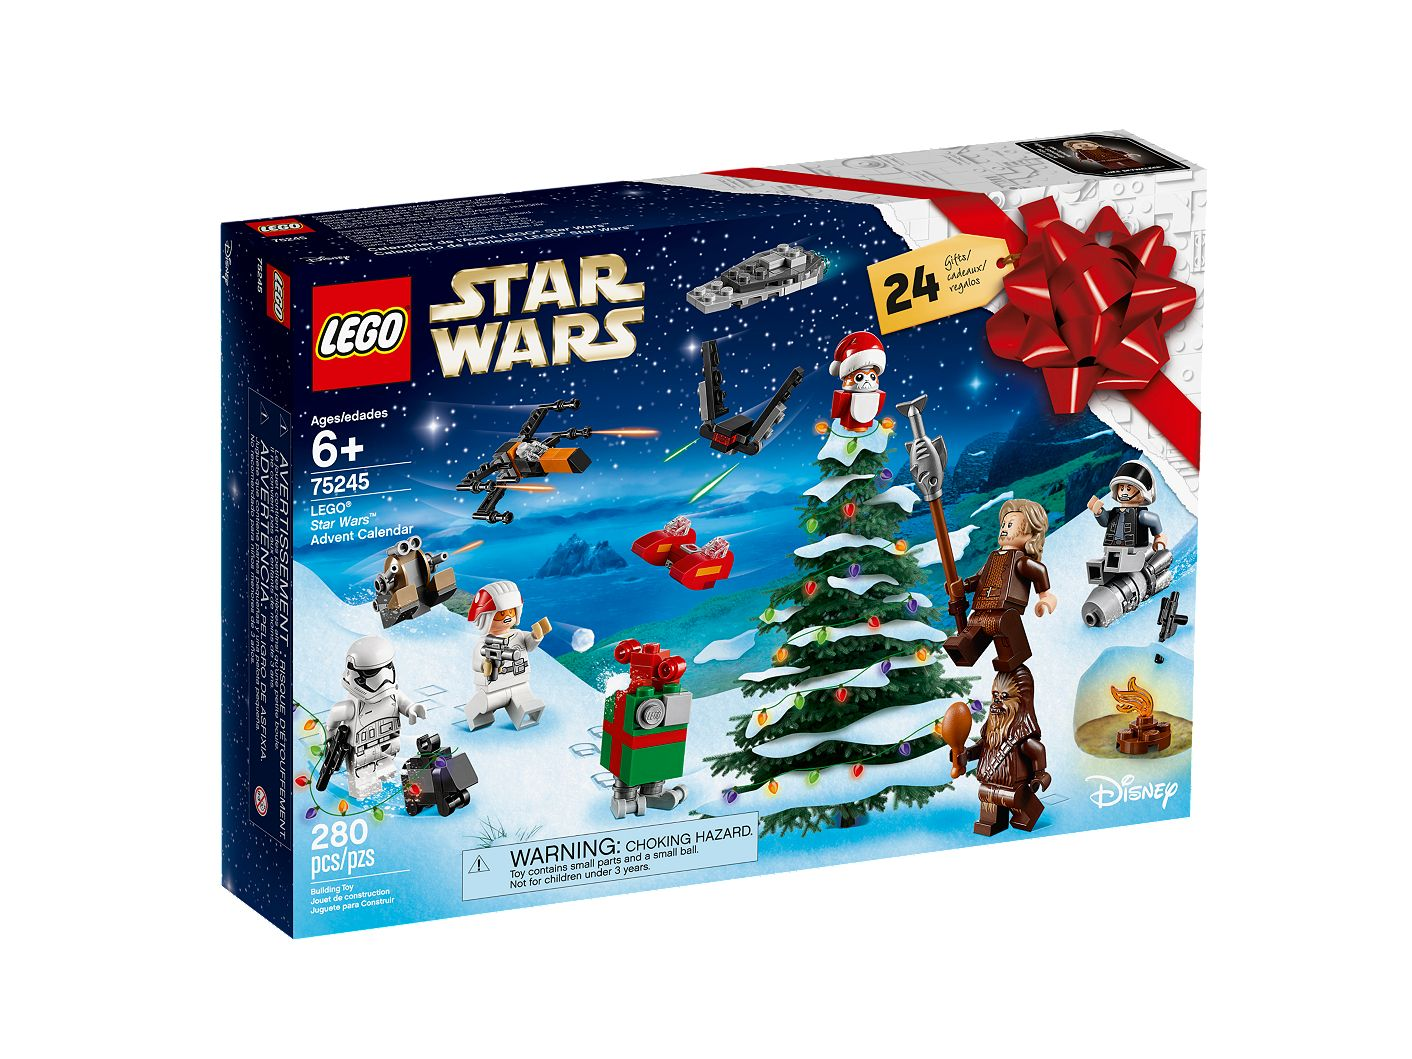 Calendrier Star Wars 2019.Lego Star Wars Advent Calendar 75245 Star Wars Buy Online At The Official Lego Shop Us